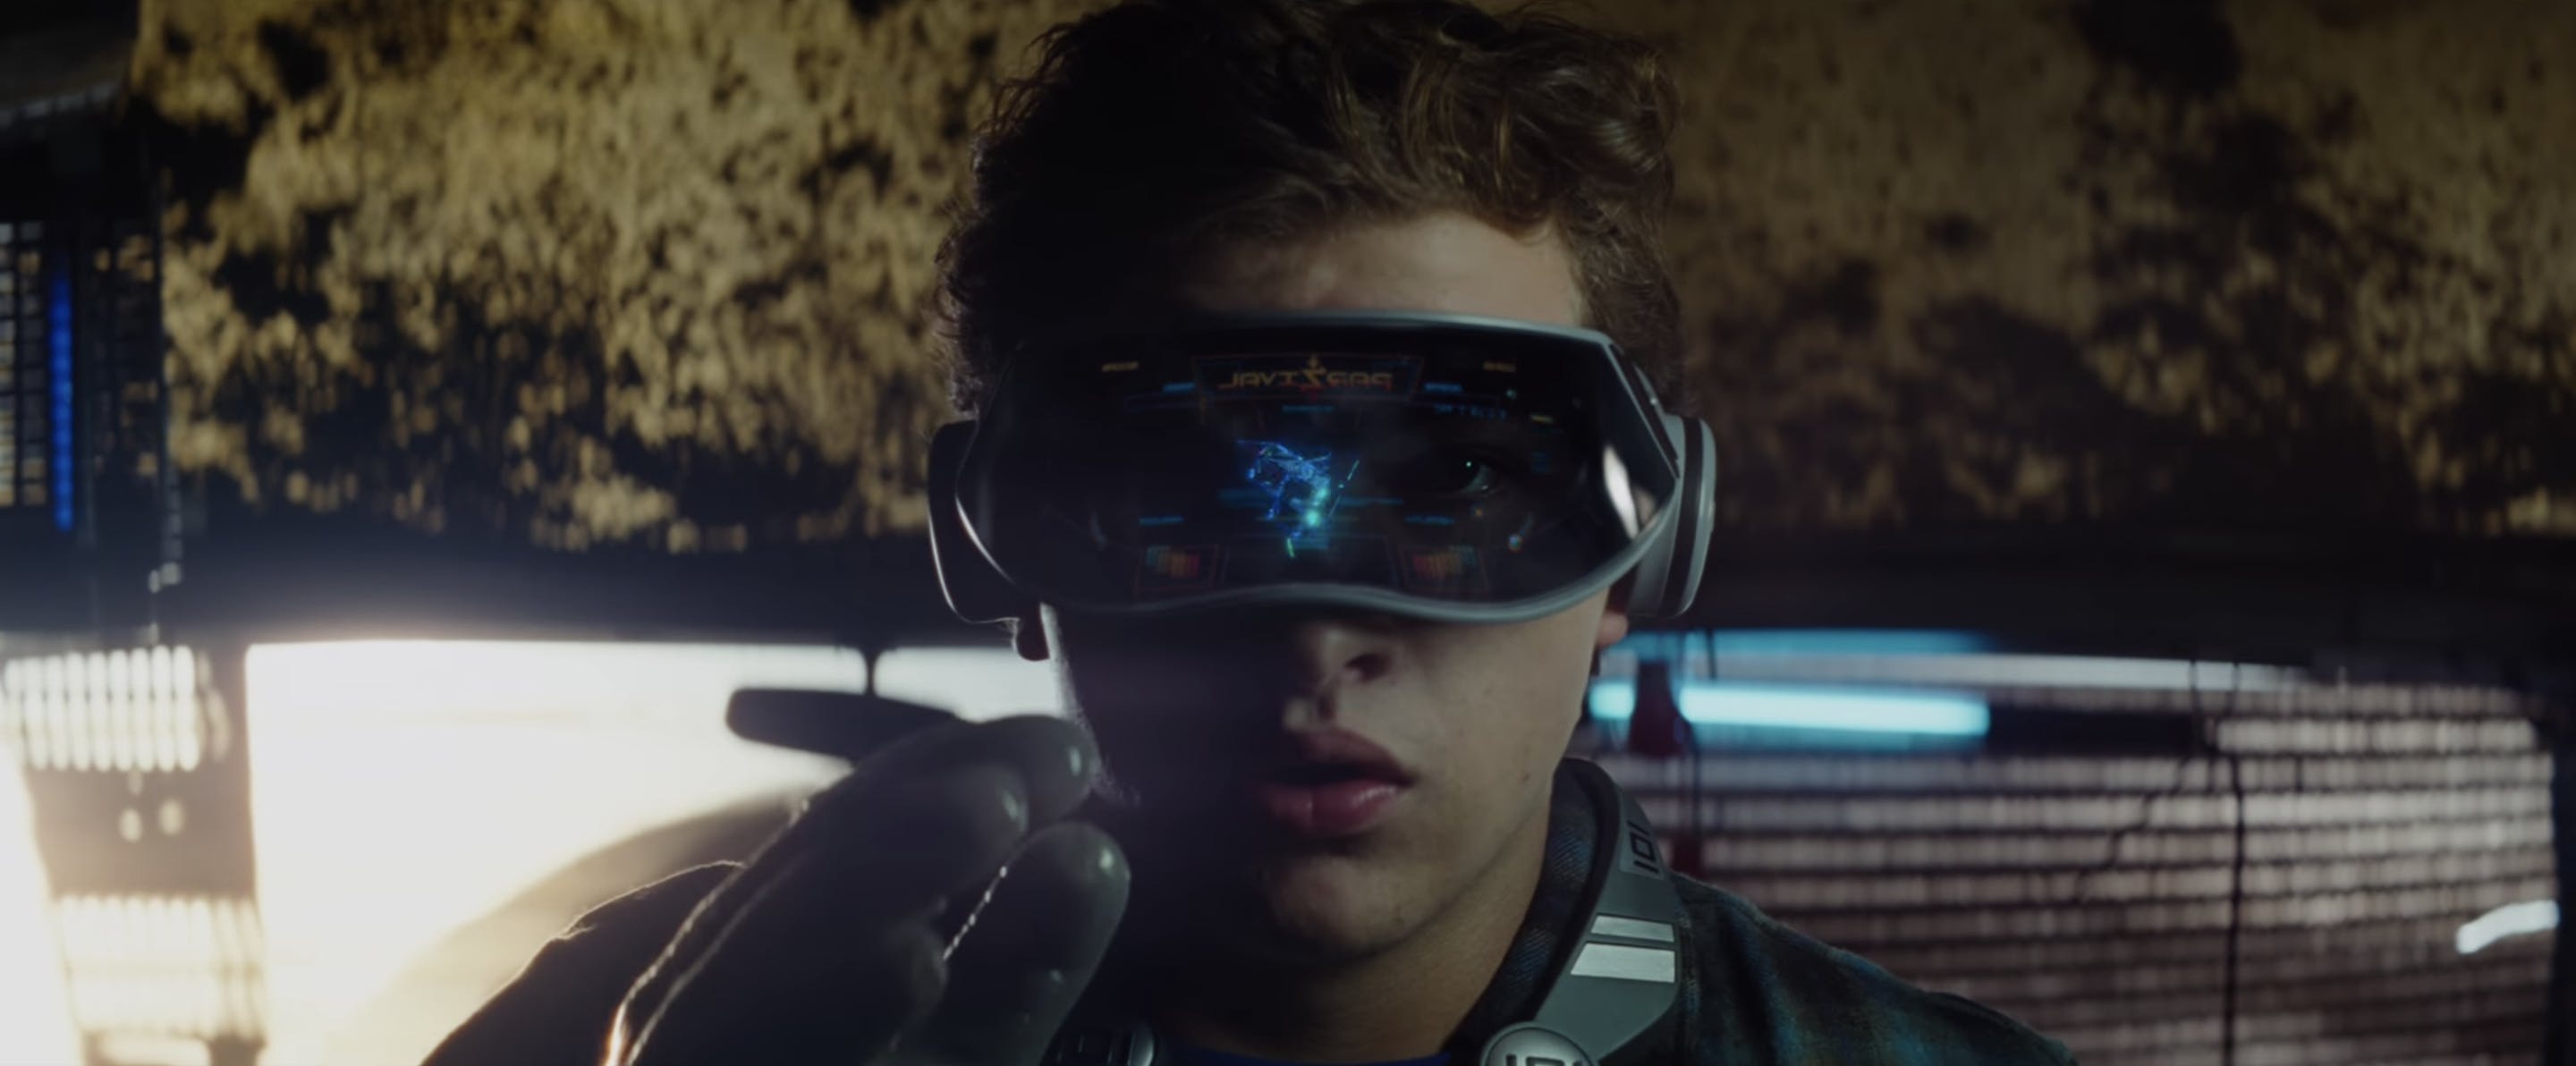 ready player one : wade